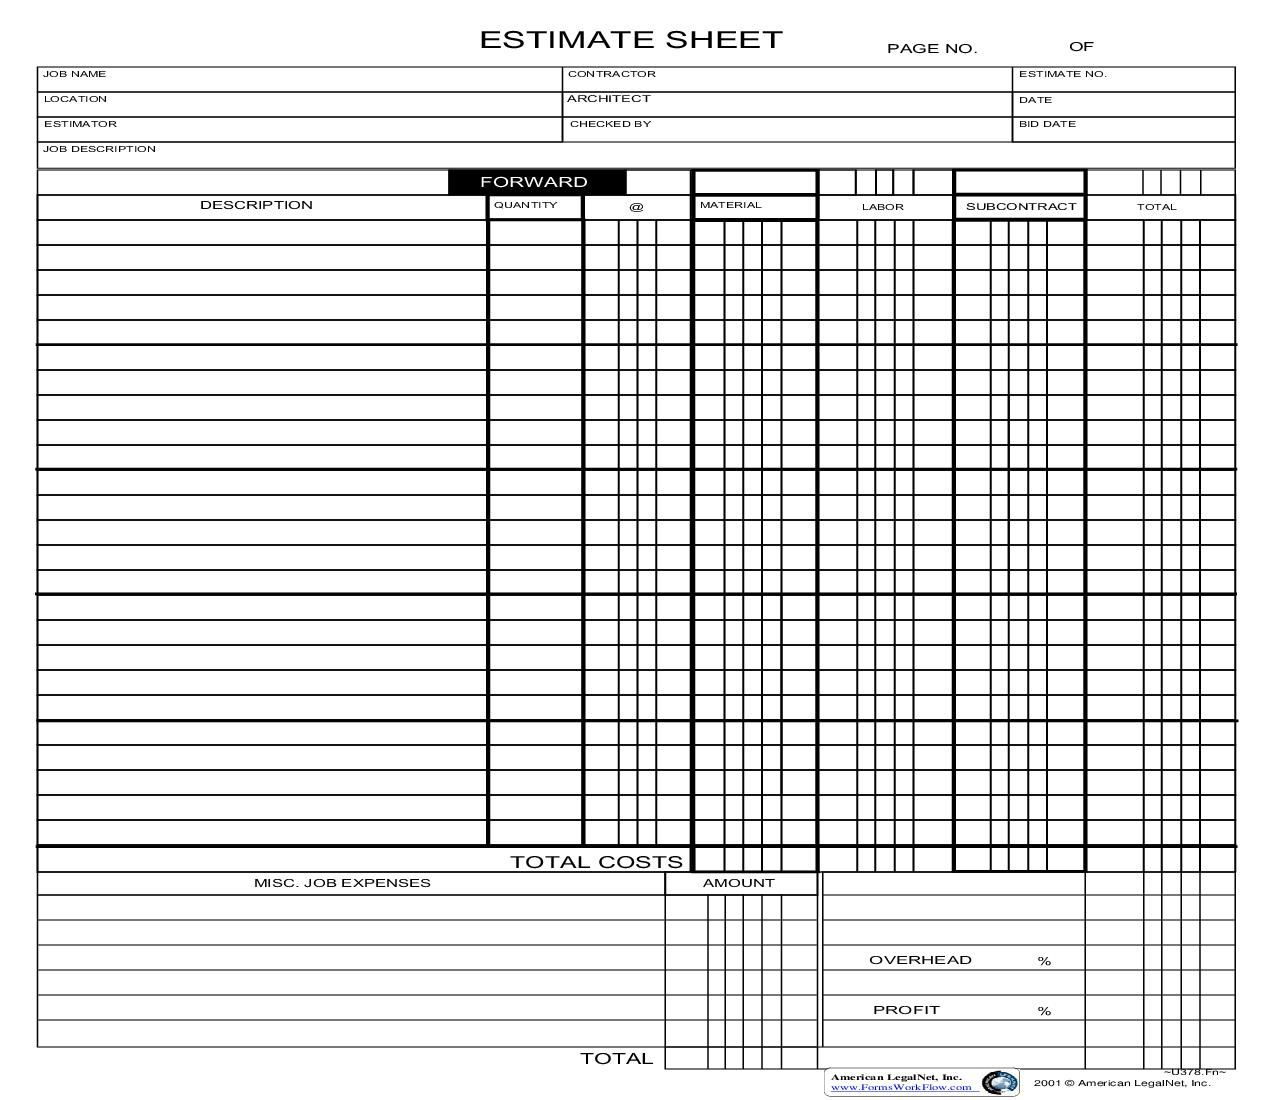 This Is A Business Forms Form That Can Be Used For